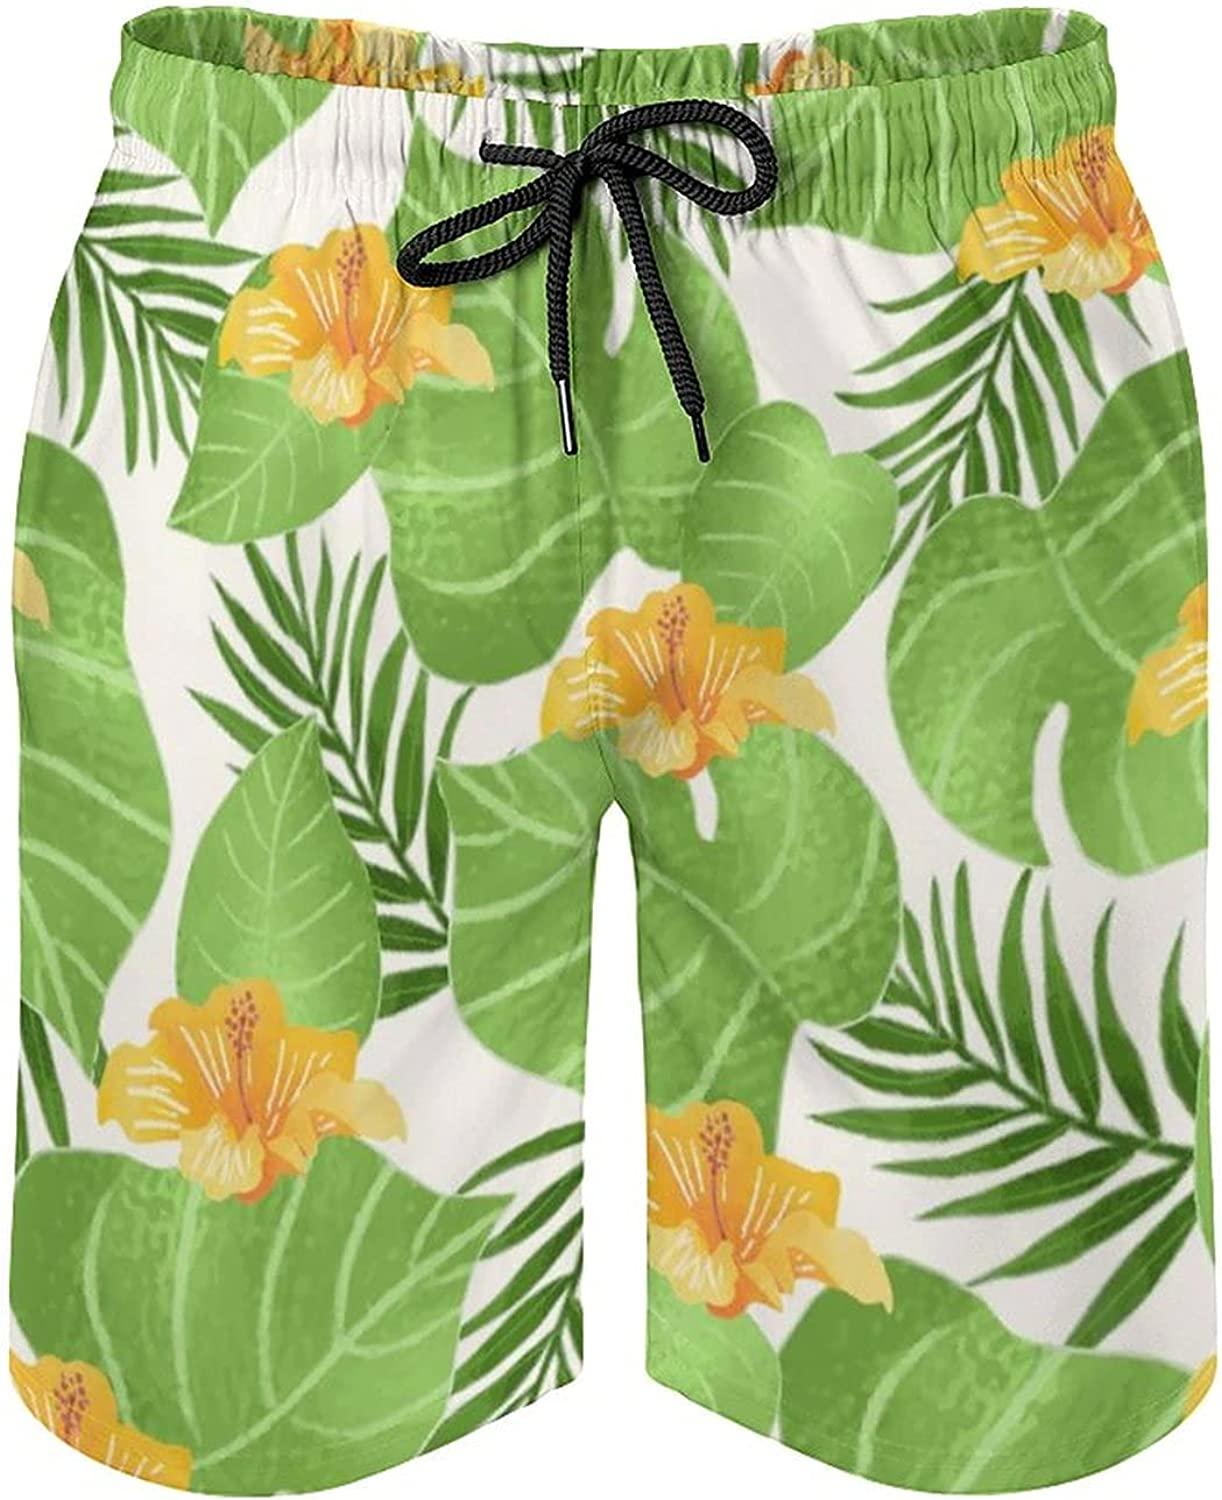 by Unbranded Men's Quick Dry Soft Relaxed Fit Drawsting Board Shorts Tropical Pattern